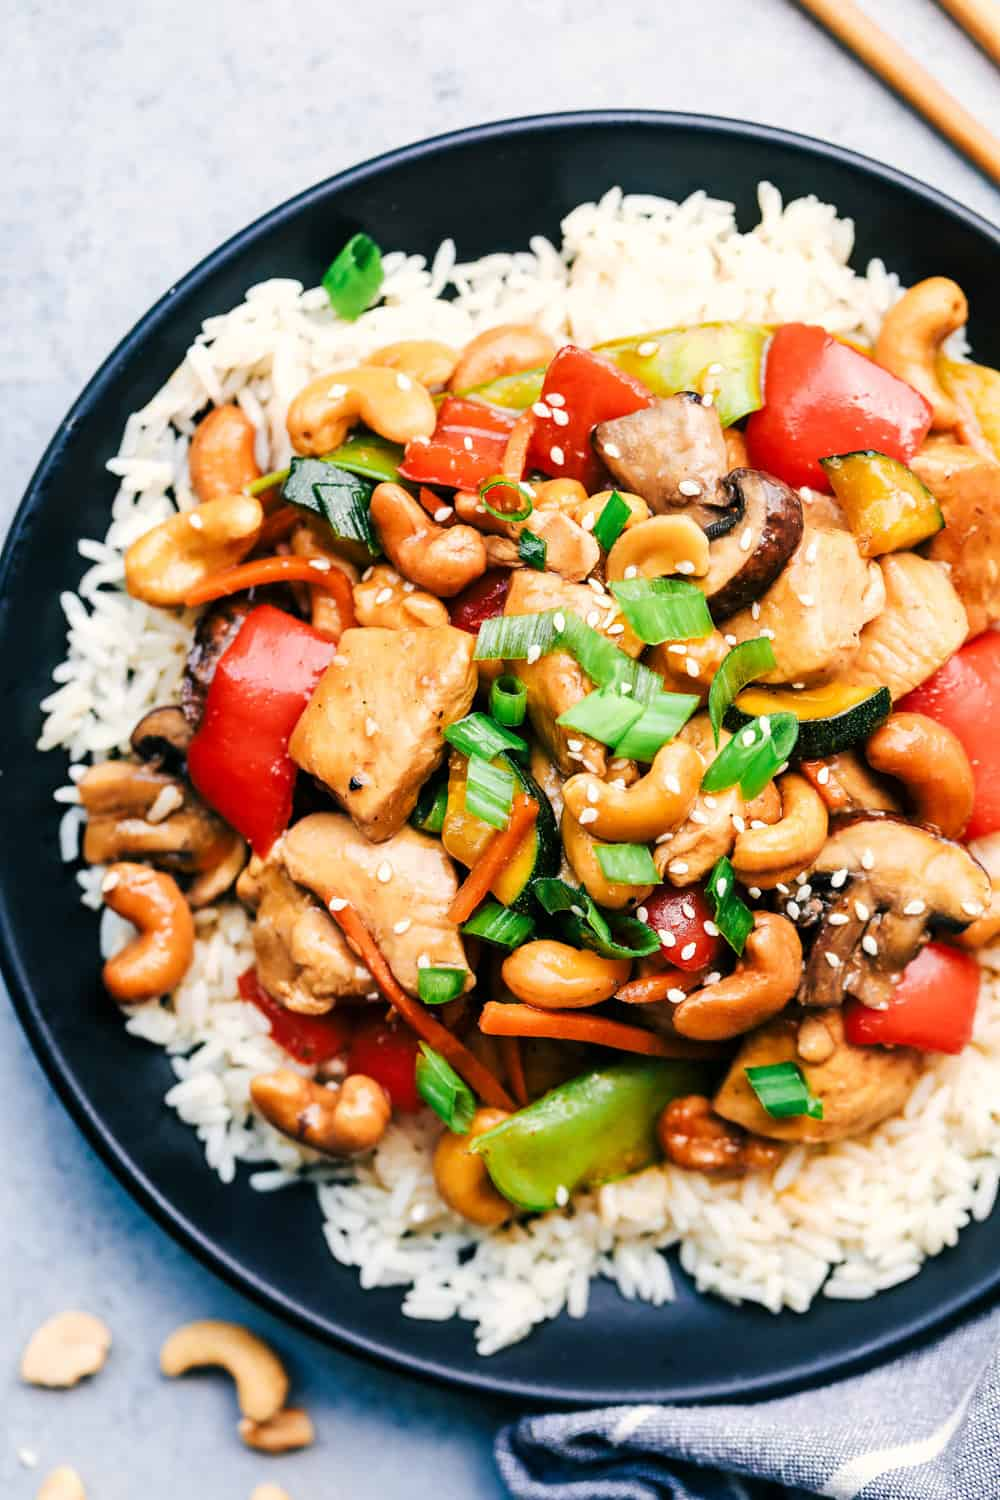 Discussion on this topic: Asian Stir-Fry with Cashews Chicken, asian-stir-fry-with-cashews-chicken/